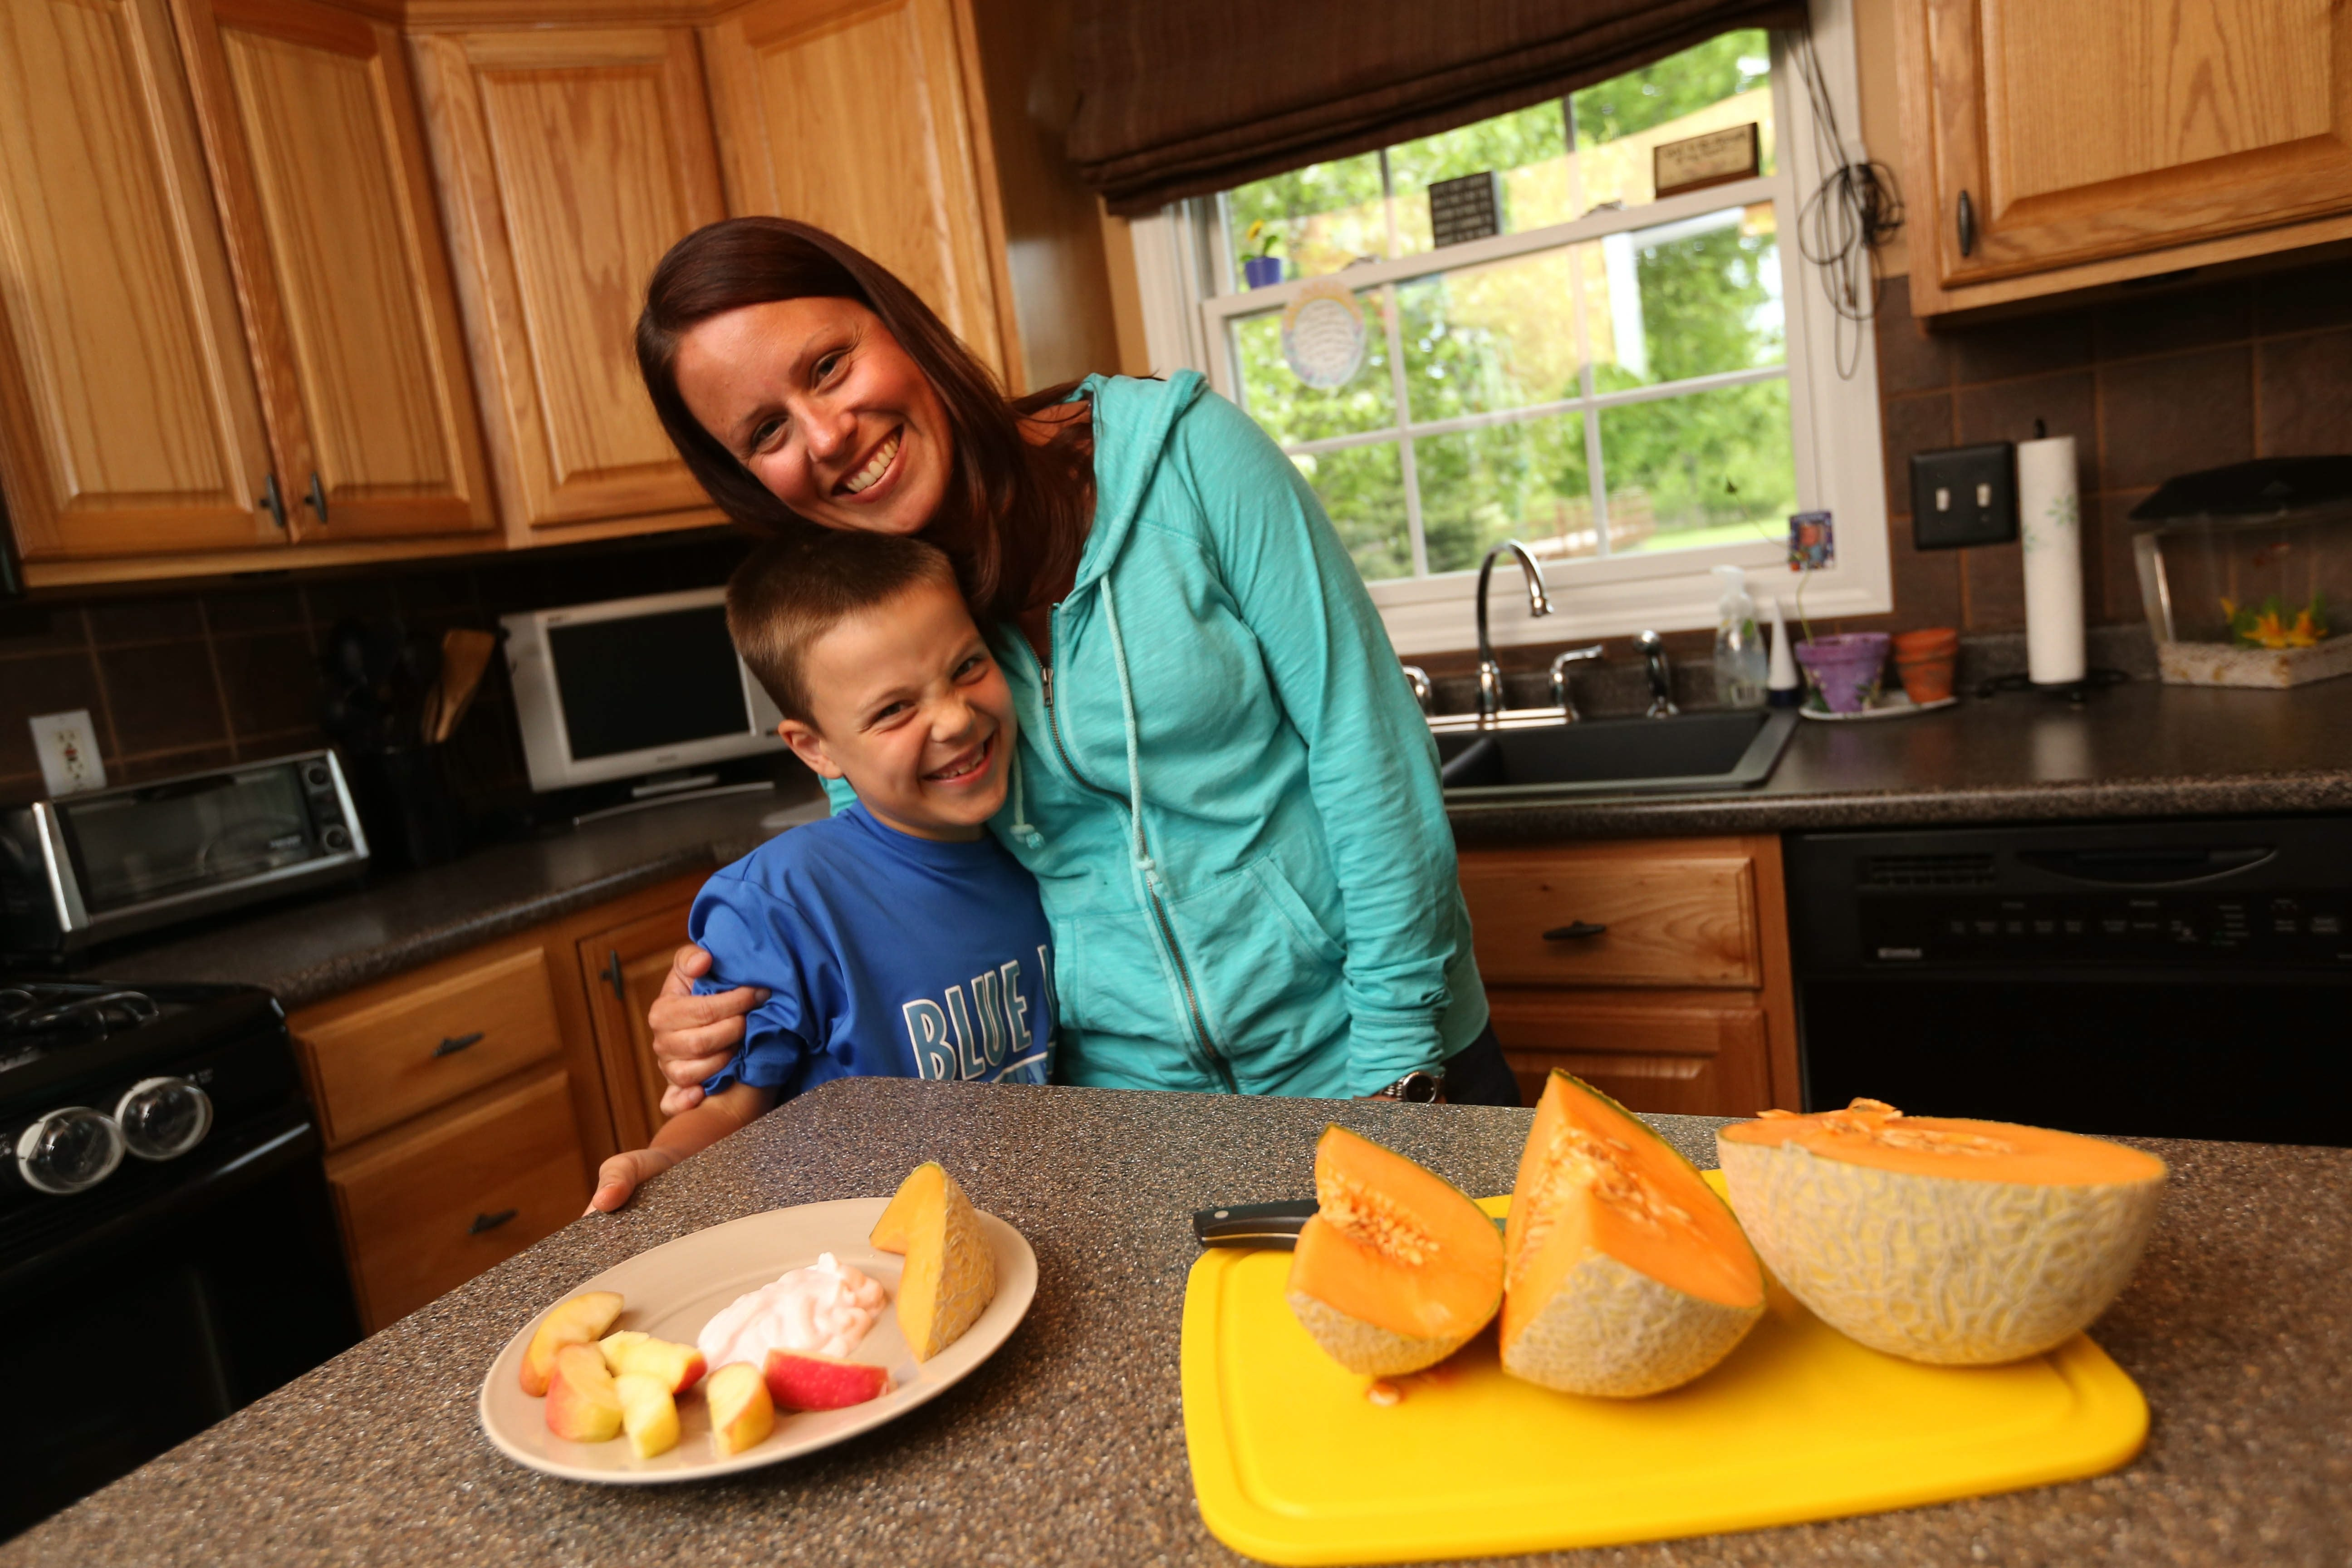 """""""Until a serious food allergy hits your family and you have to live with it every day – until you have to reconstruct your life – you don't know the impact it can have."""" – Nurse practitioner Kelly Naab of Clarence, with her son Cooper, 7, who has a life-threatening peanut allergy"""